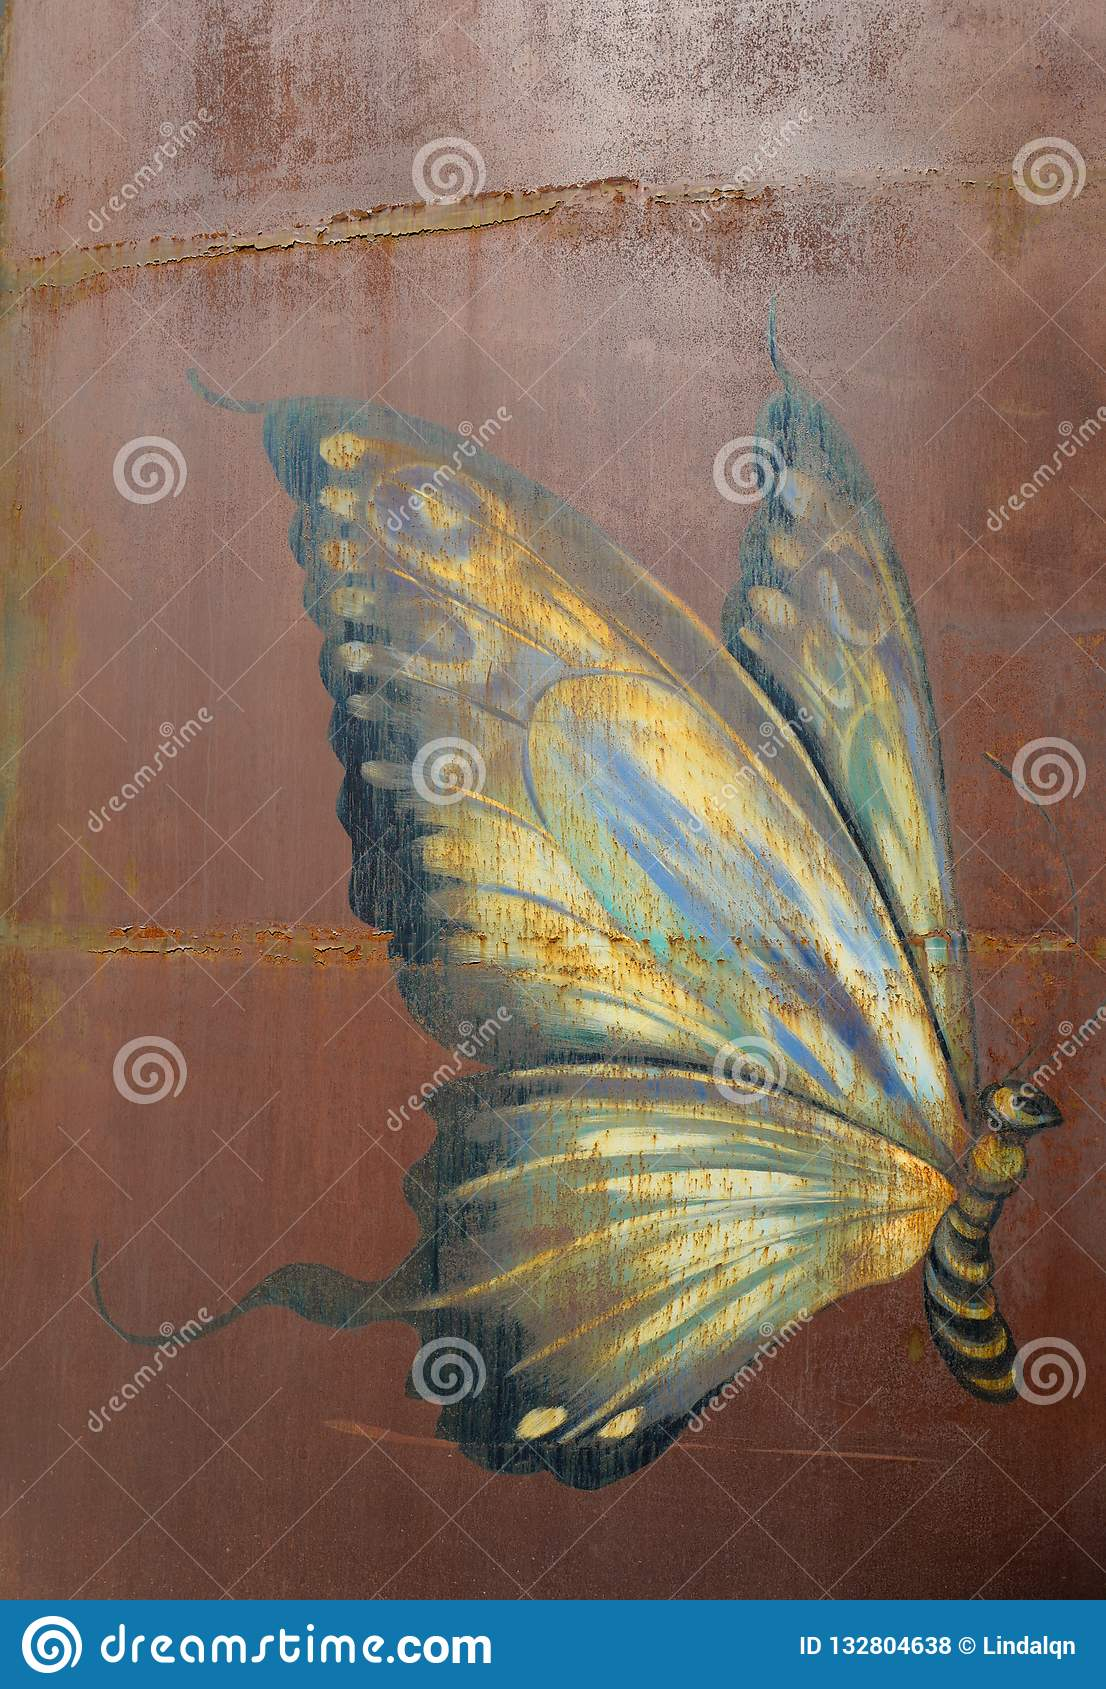 the wall painting of a butterfly